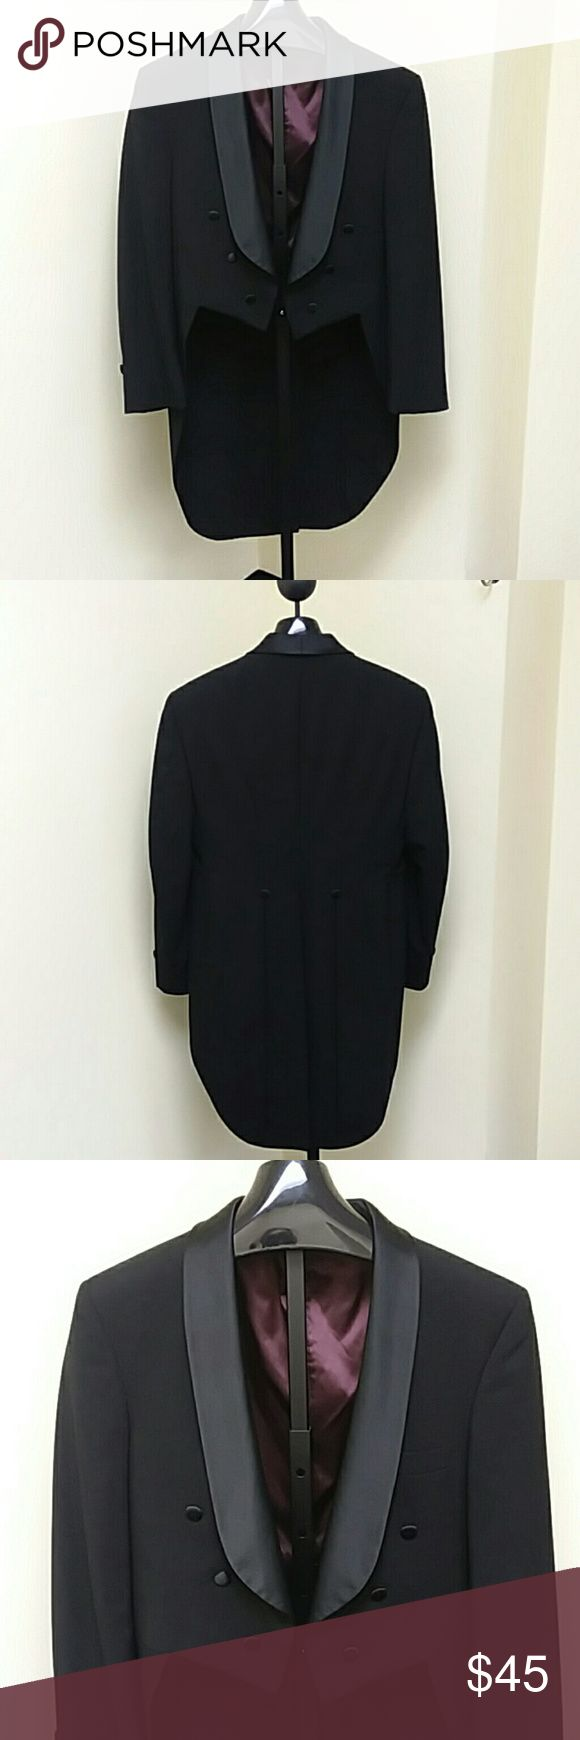 AFTER SIX Shawl Style Tuxedo Jacket with Tails VTG shawl style, tuxedo jacket with tails, with burgundy lining. Covered buttons. 100% wool. From rental stock at a tuxedo store, has been dry cleaned and ready to wear. After Six Suits & Blazers Tuxedos